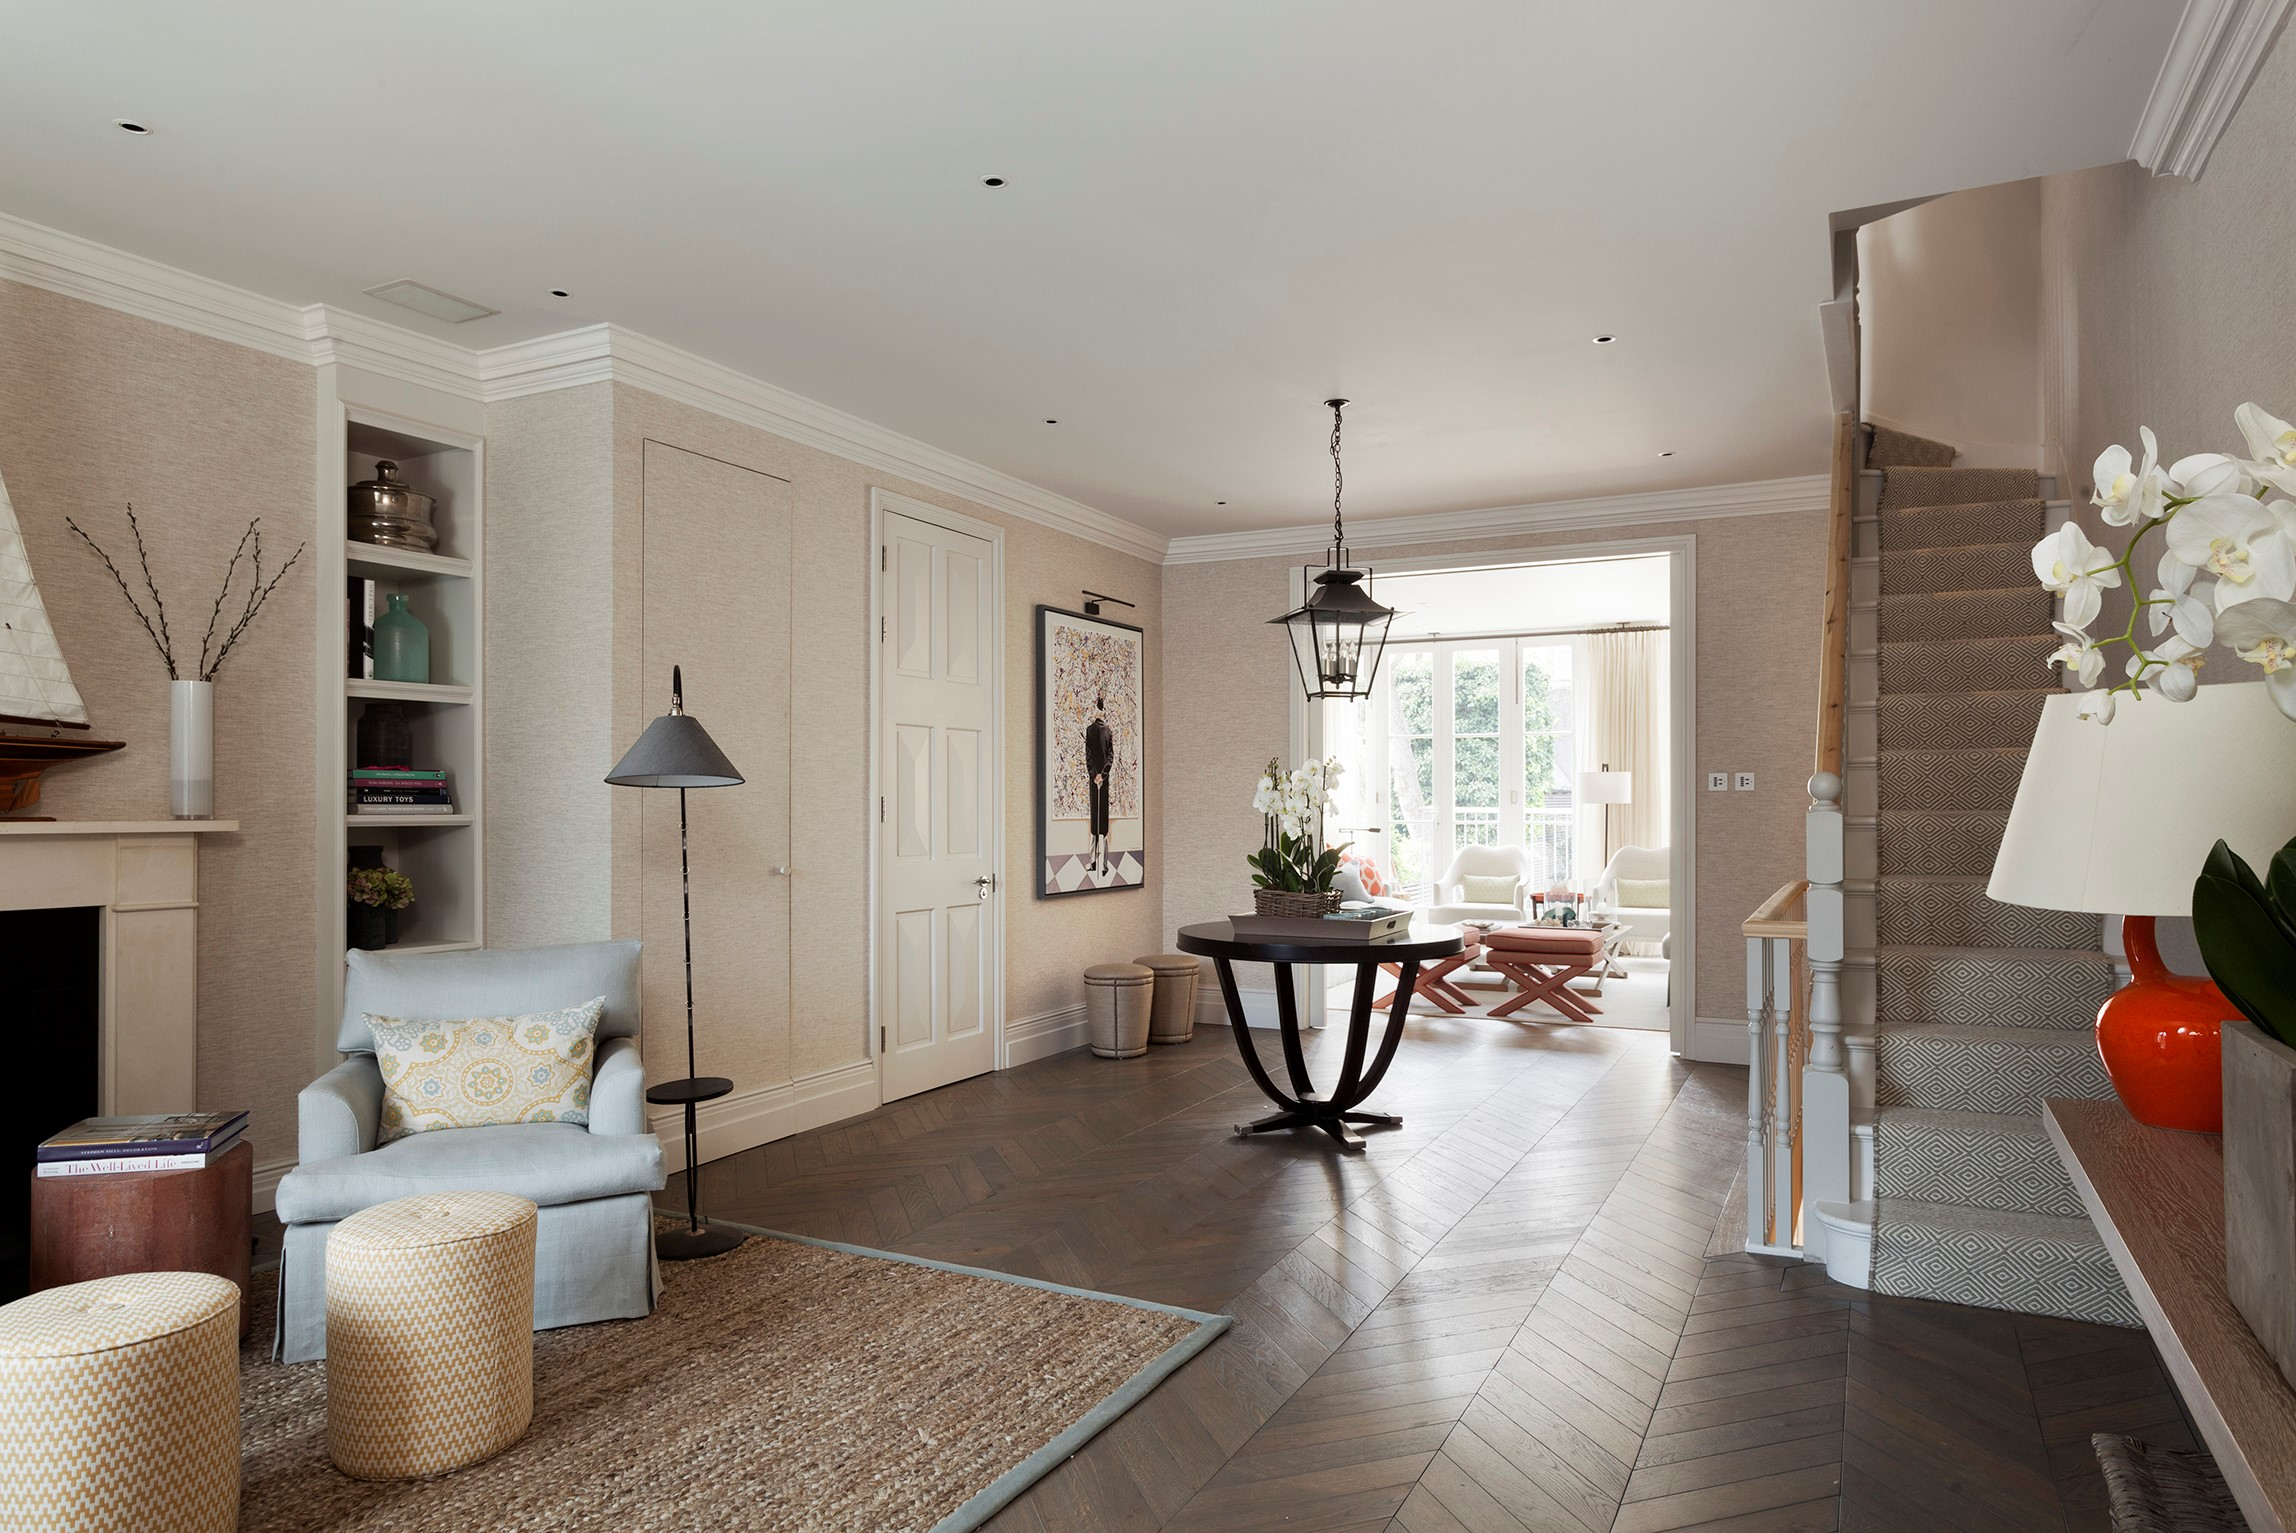 Sophisticated House in Central London with BRABBU´s Armchairs sophisticated houseSophisticated House in Central London with BRABBU´s ArmchairsMelissa and Miller Interiors 2